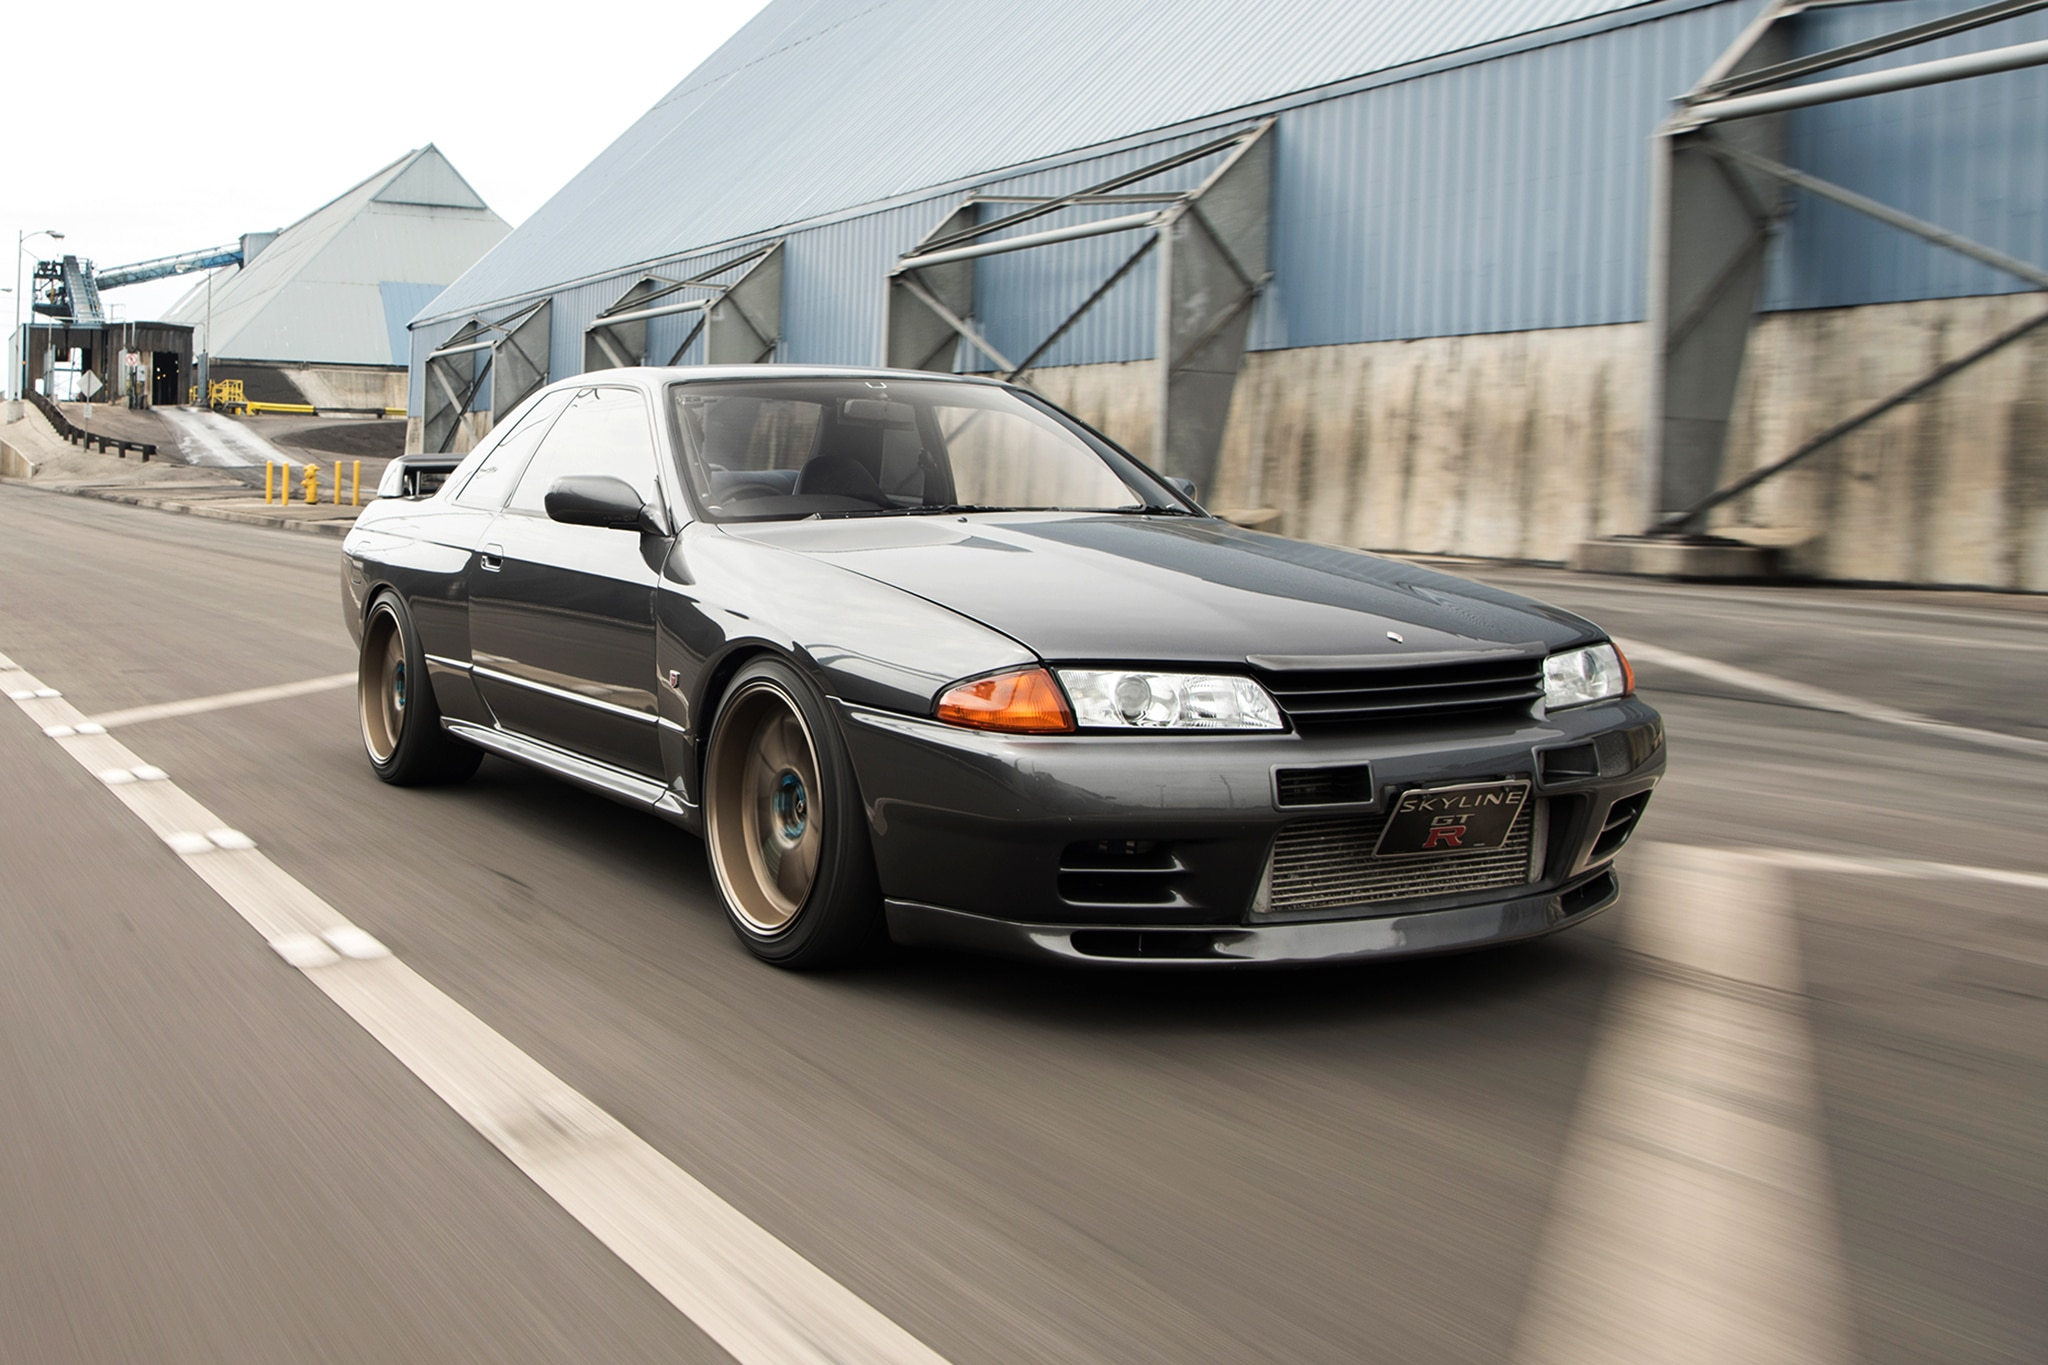 1989 Nissan Skyline GT R Front Three Quarter In Motion 03